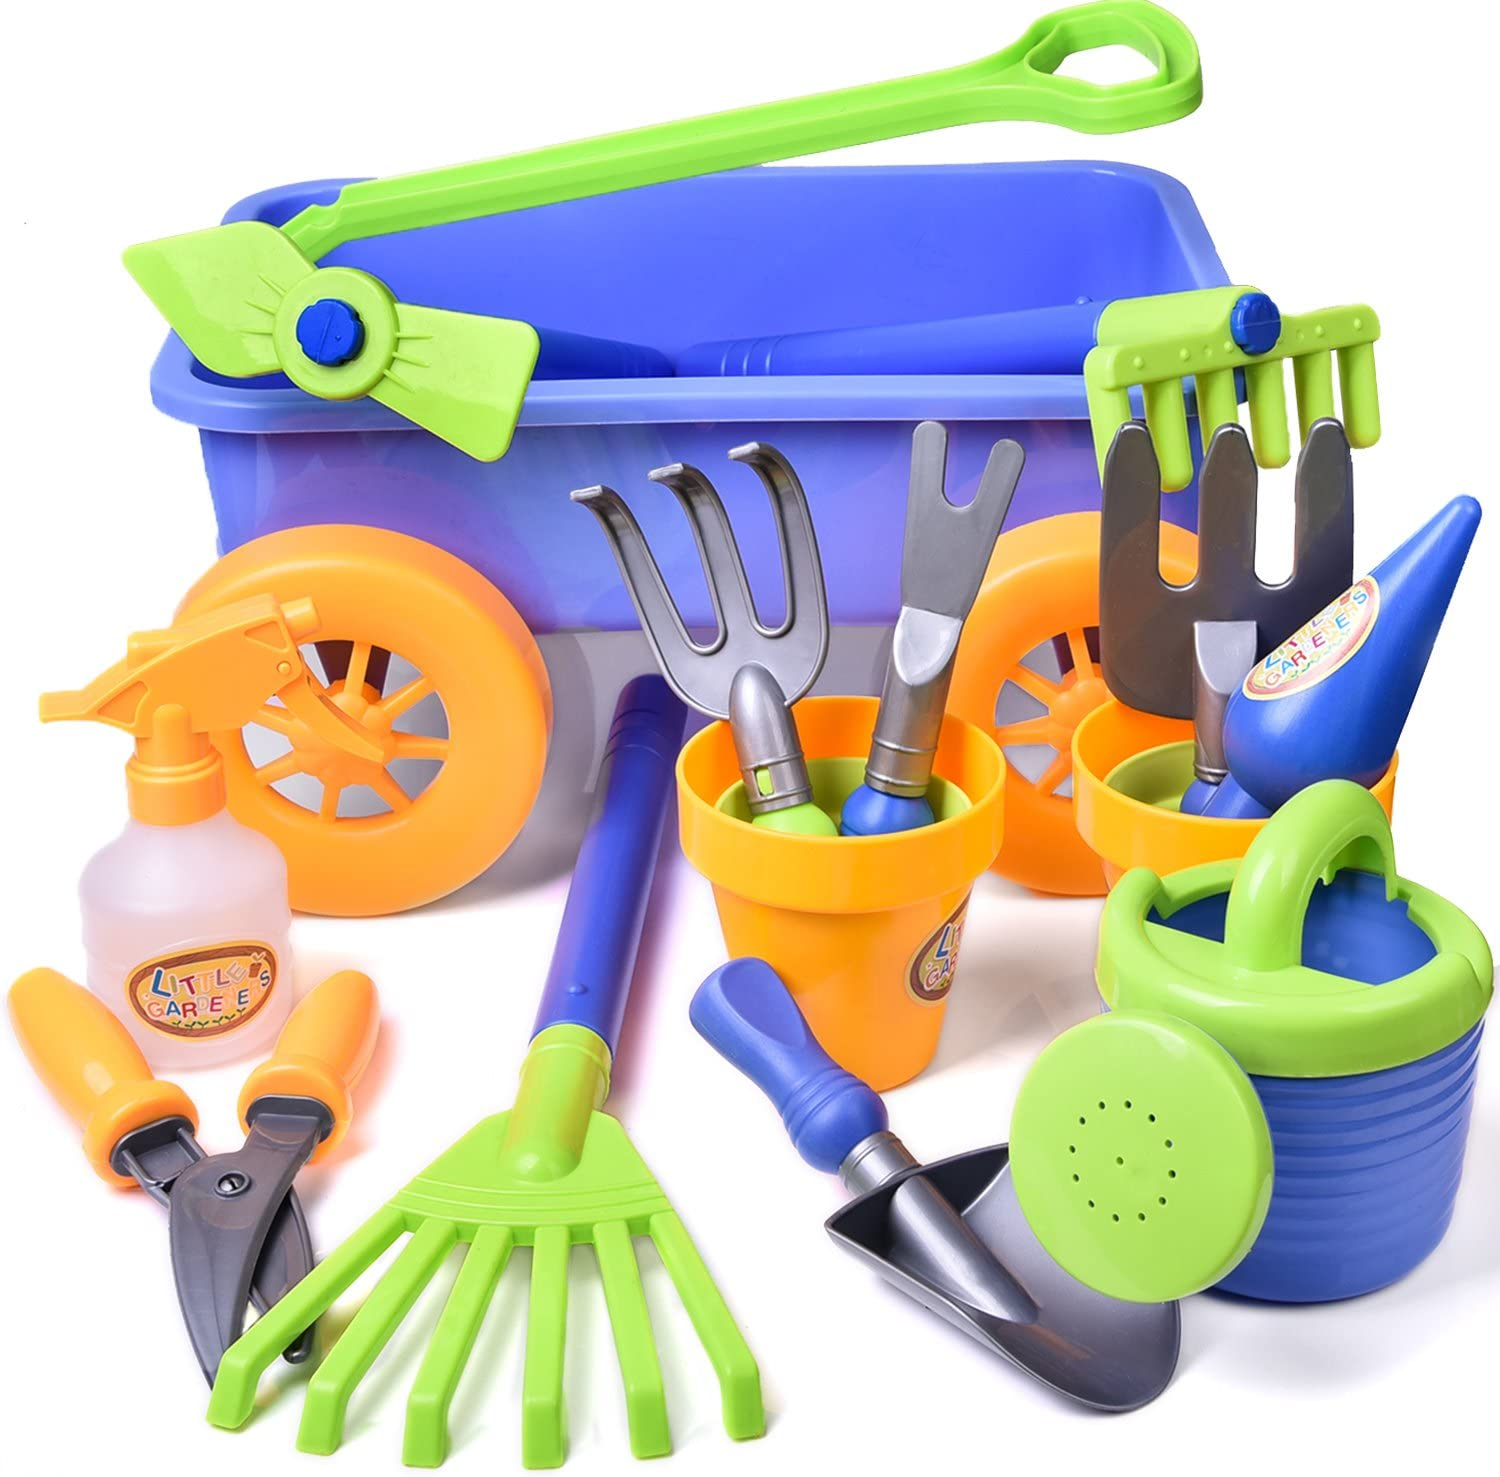 Kid's Garden Tool Toys Set, Beach Sand Toy, Kids Outdoor Toys, Gardening Backyard Tool Set Wagon Other Garden Tools- 16 PCs